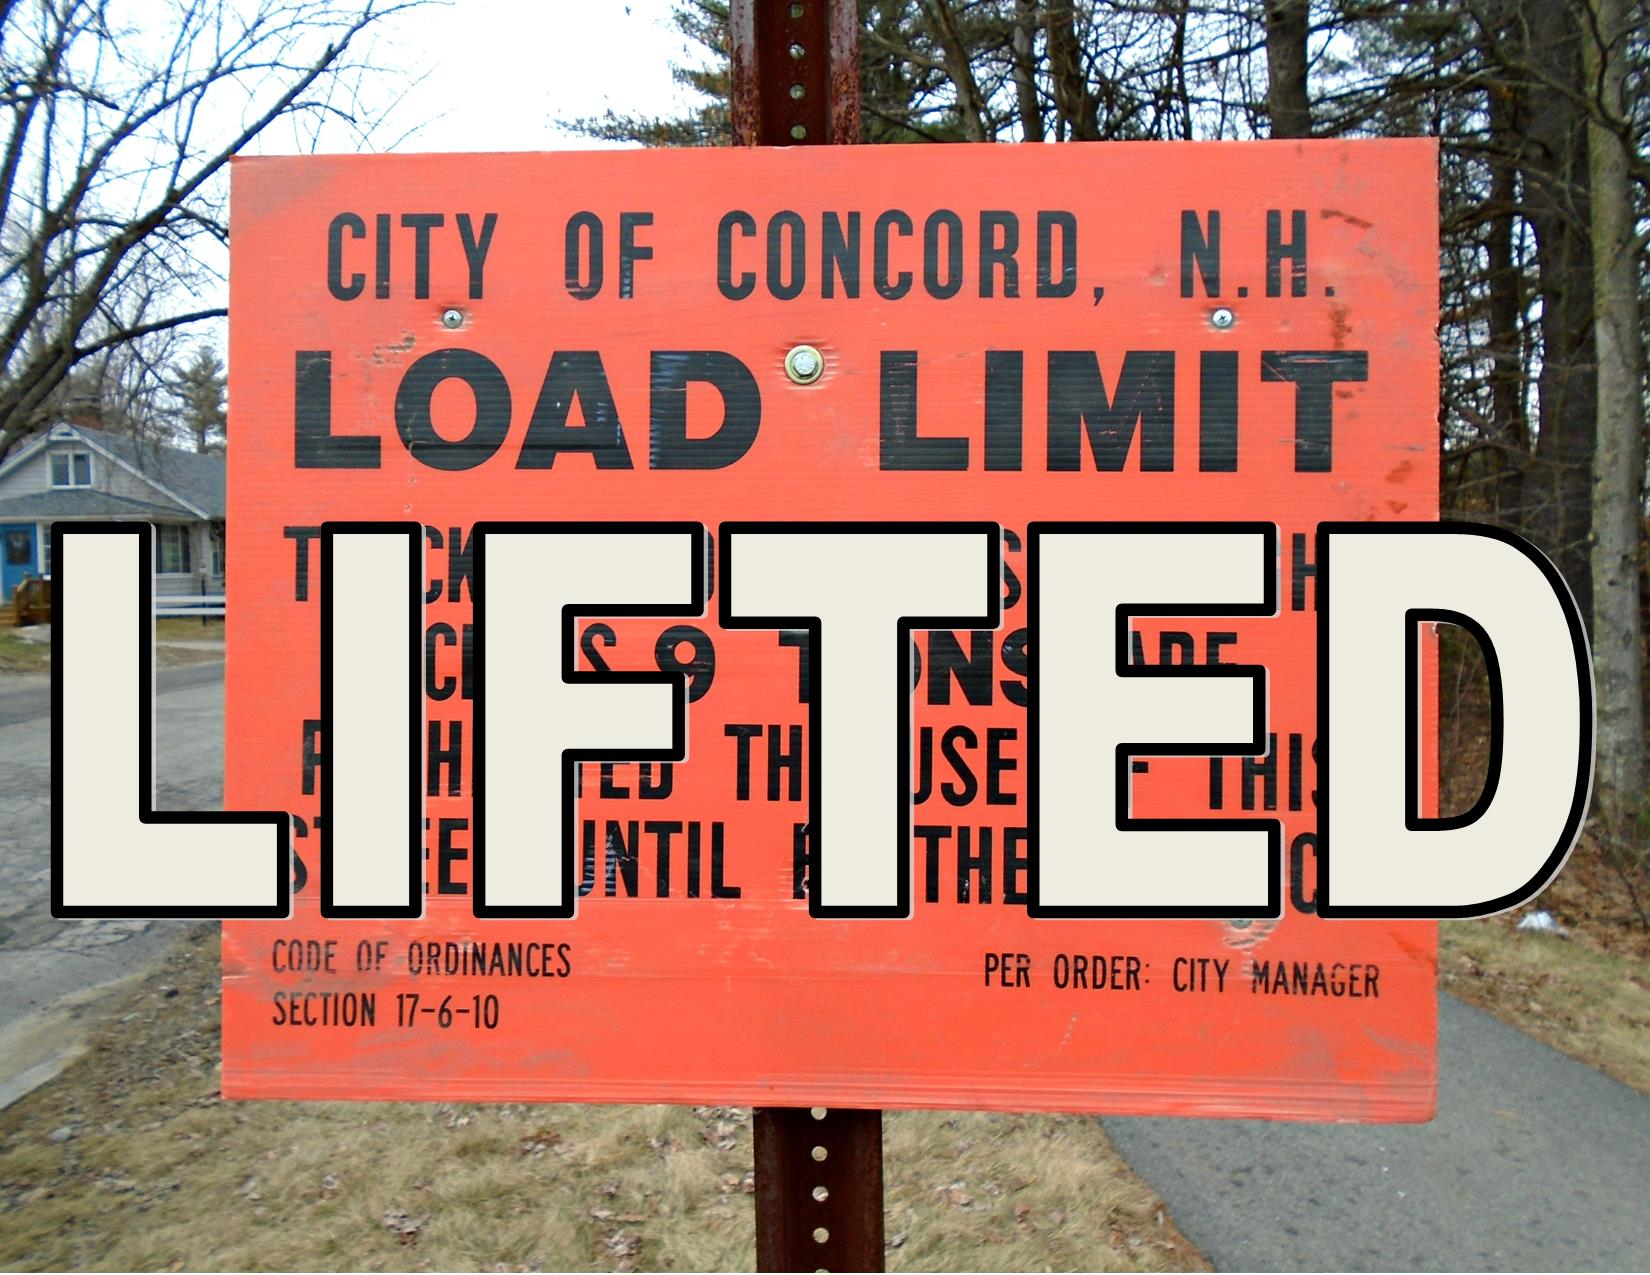 Concord Road Load Limited Lifted